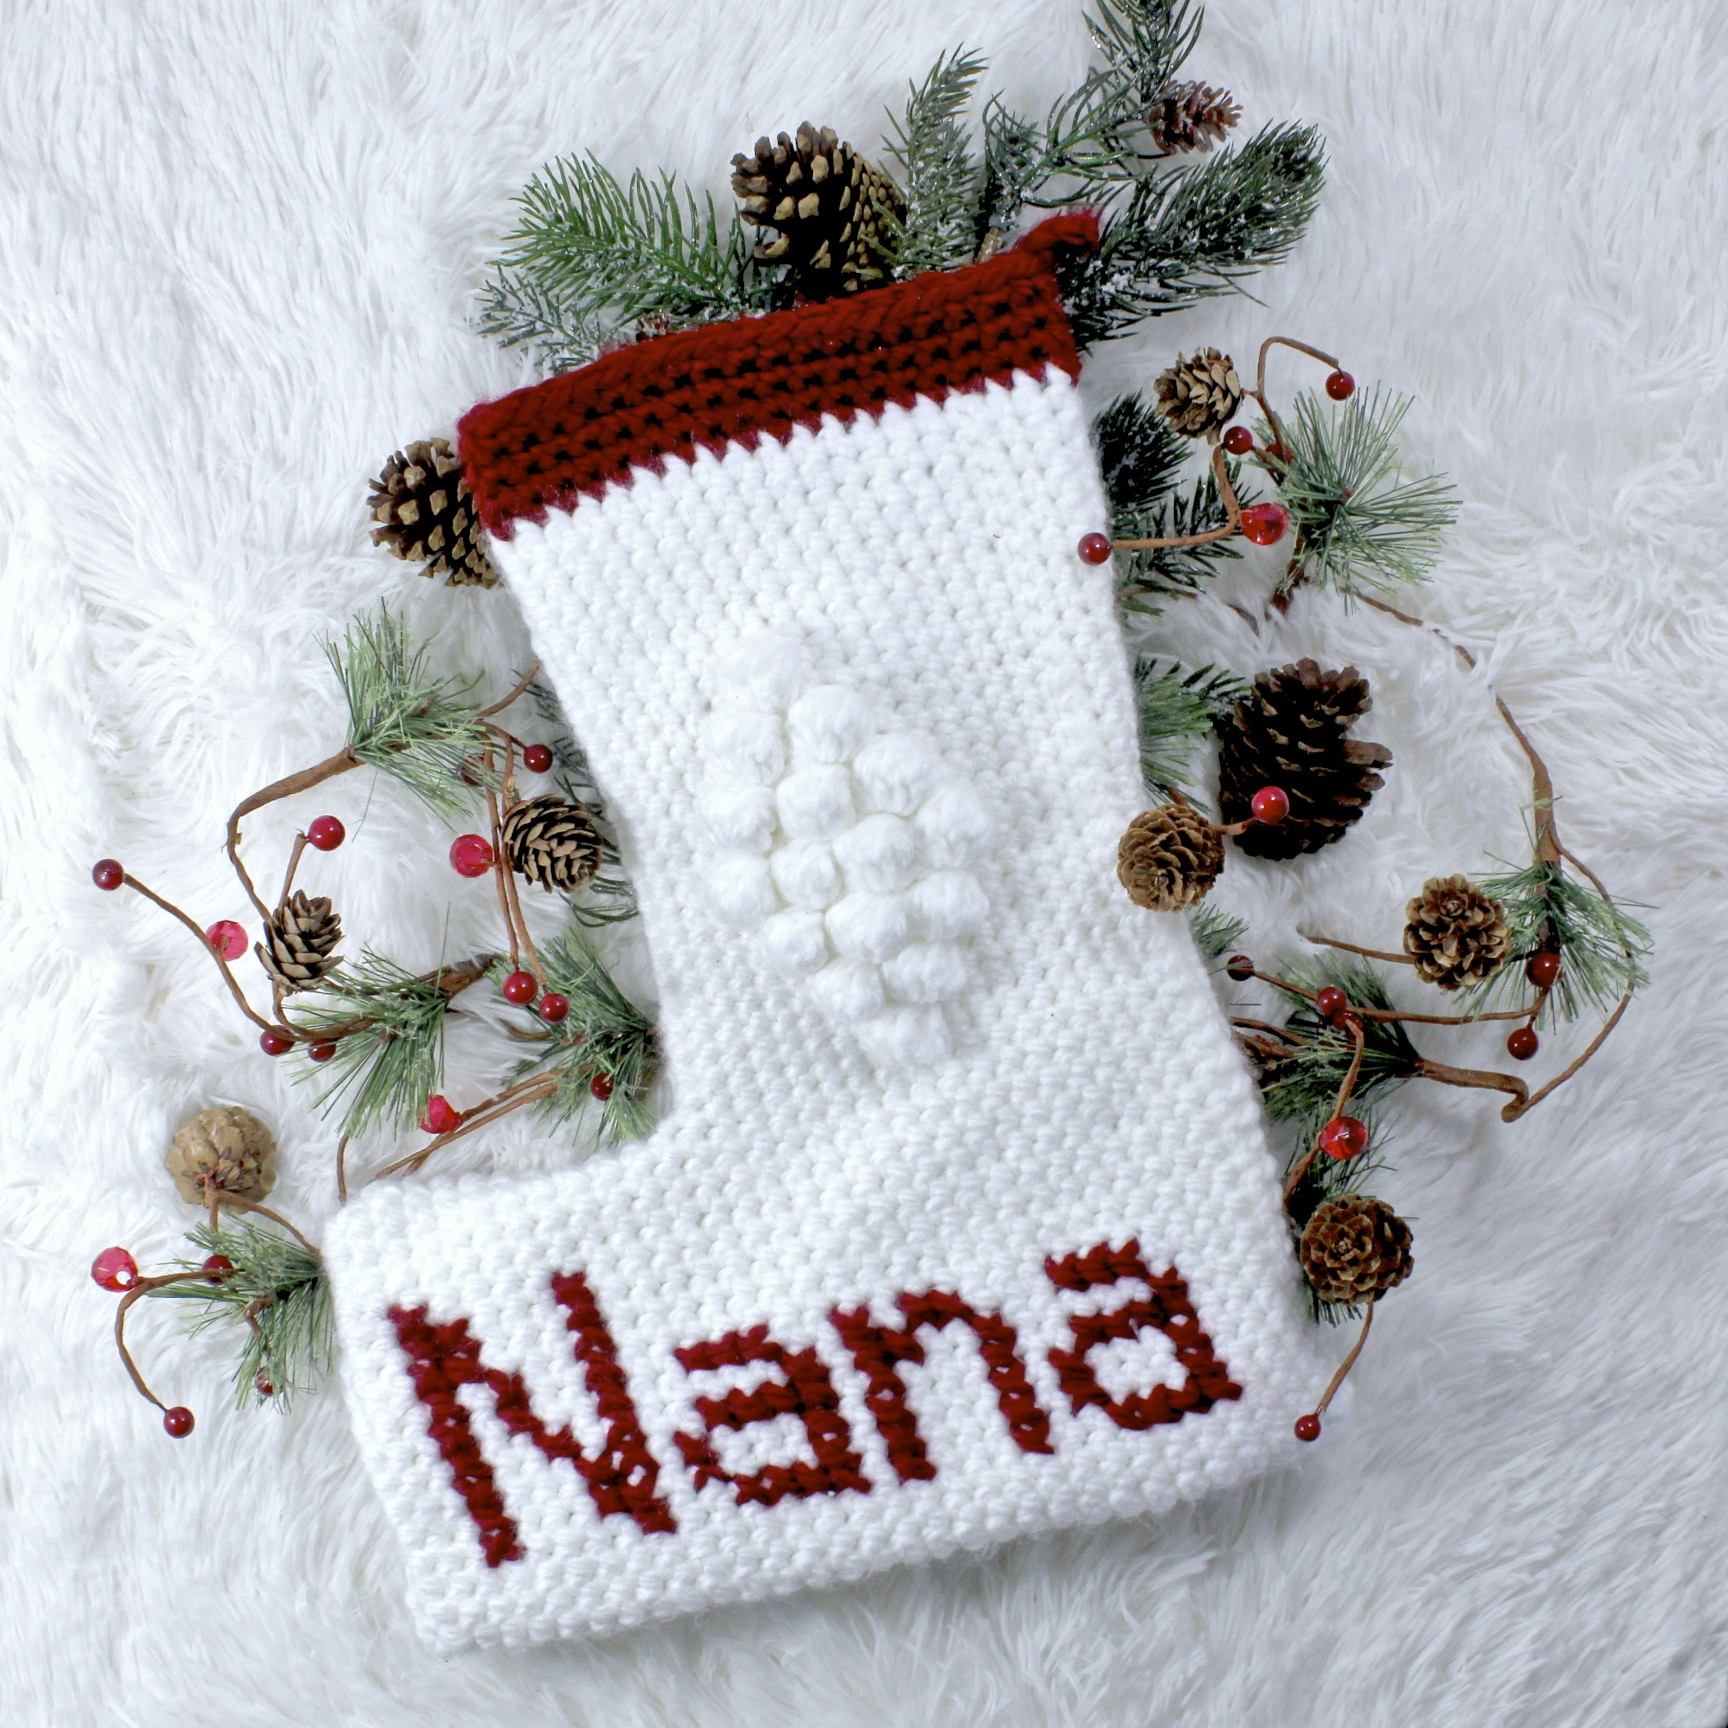 Crochet Stocking Pattern  Christmas Blessings Crochet Stocking Free Pattern Nanas Crafty Home